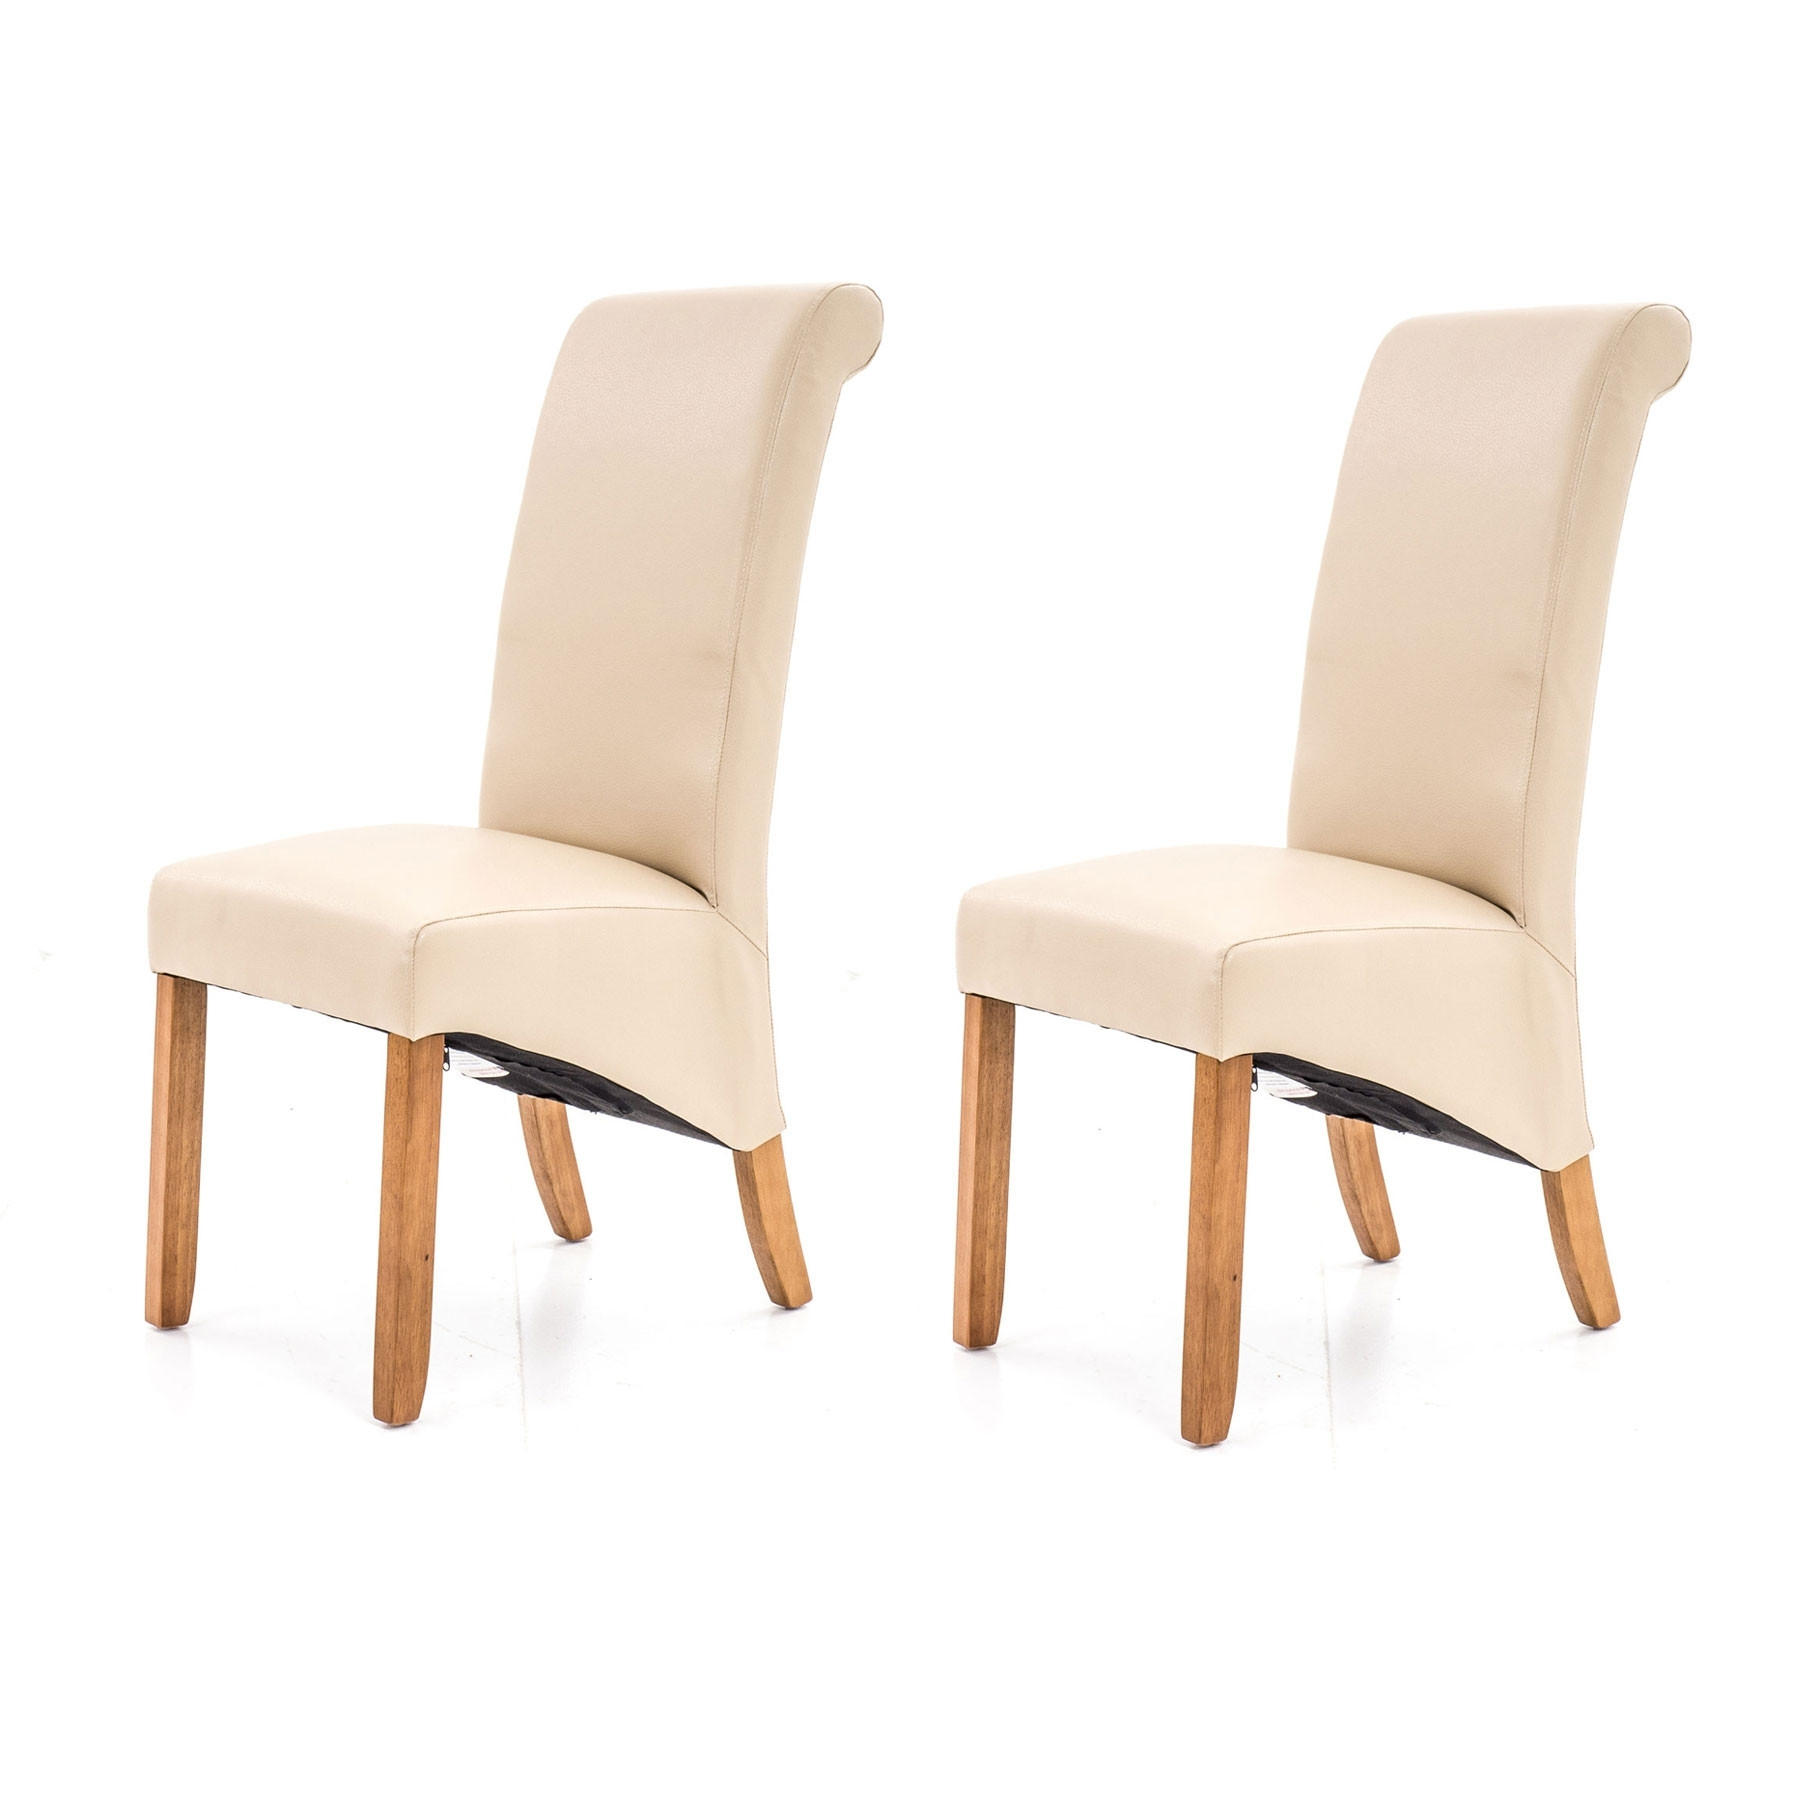 2 Porto Cream Faux Leather Dining Chairs Regarding Famous Cream Faux Leather Dining Chairs (Gallery 18 of 25)